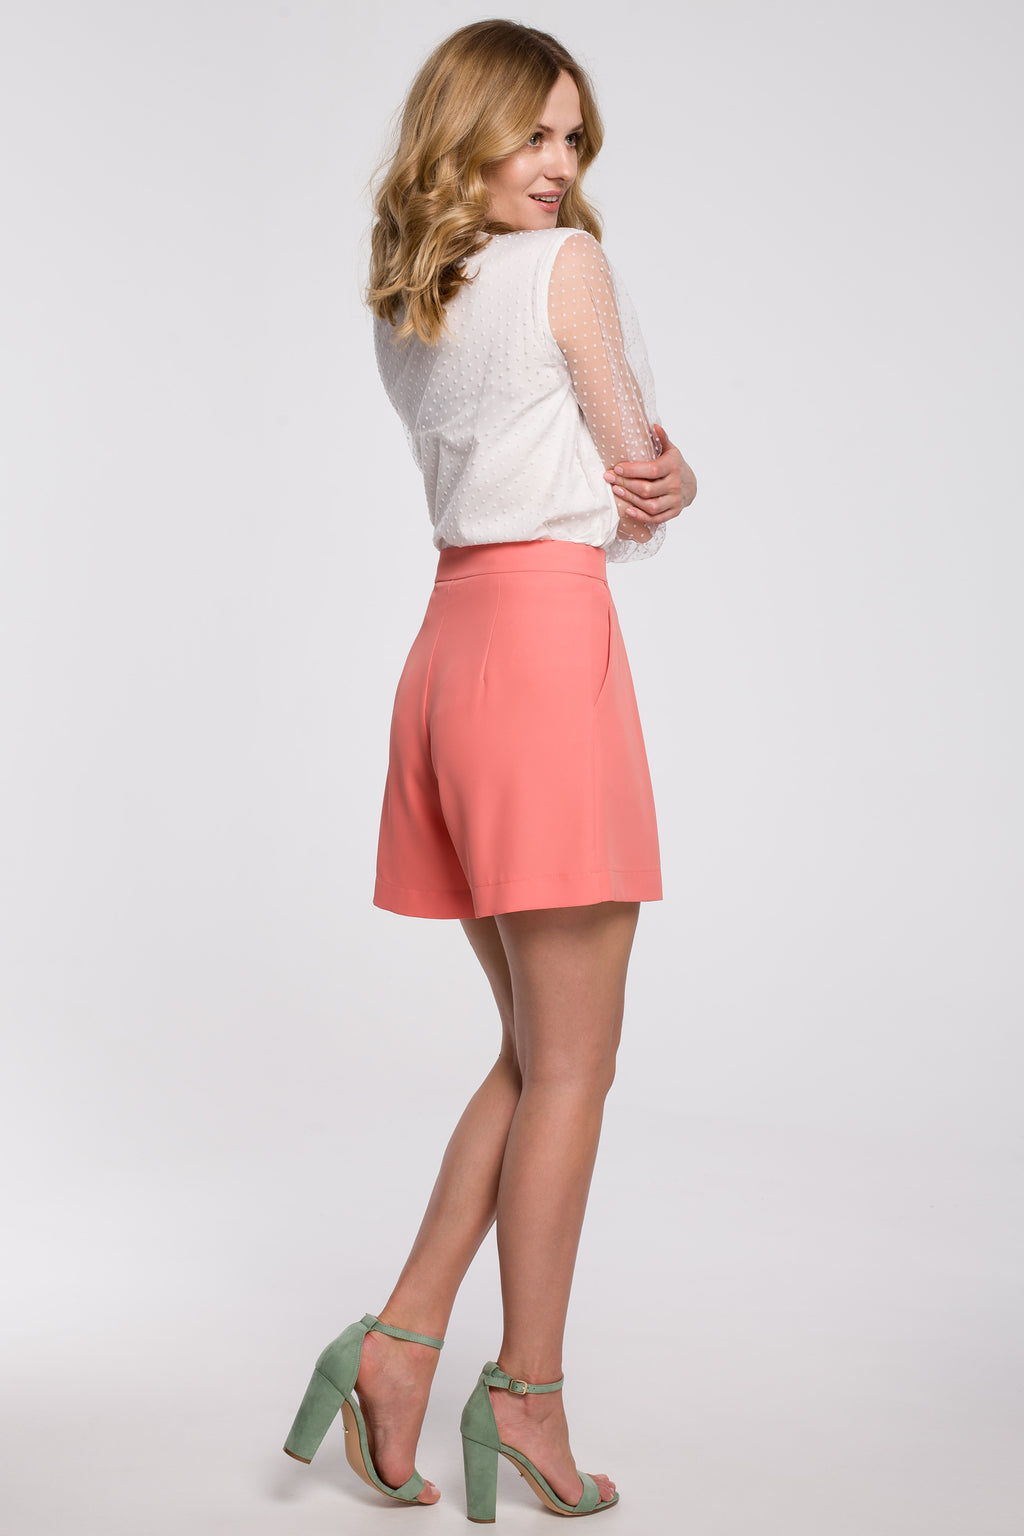 Peach Relaxed Shorts With Front Pleats - So Chic Boutique